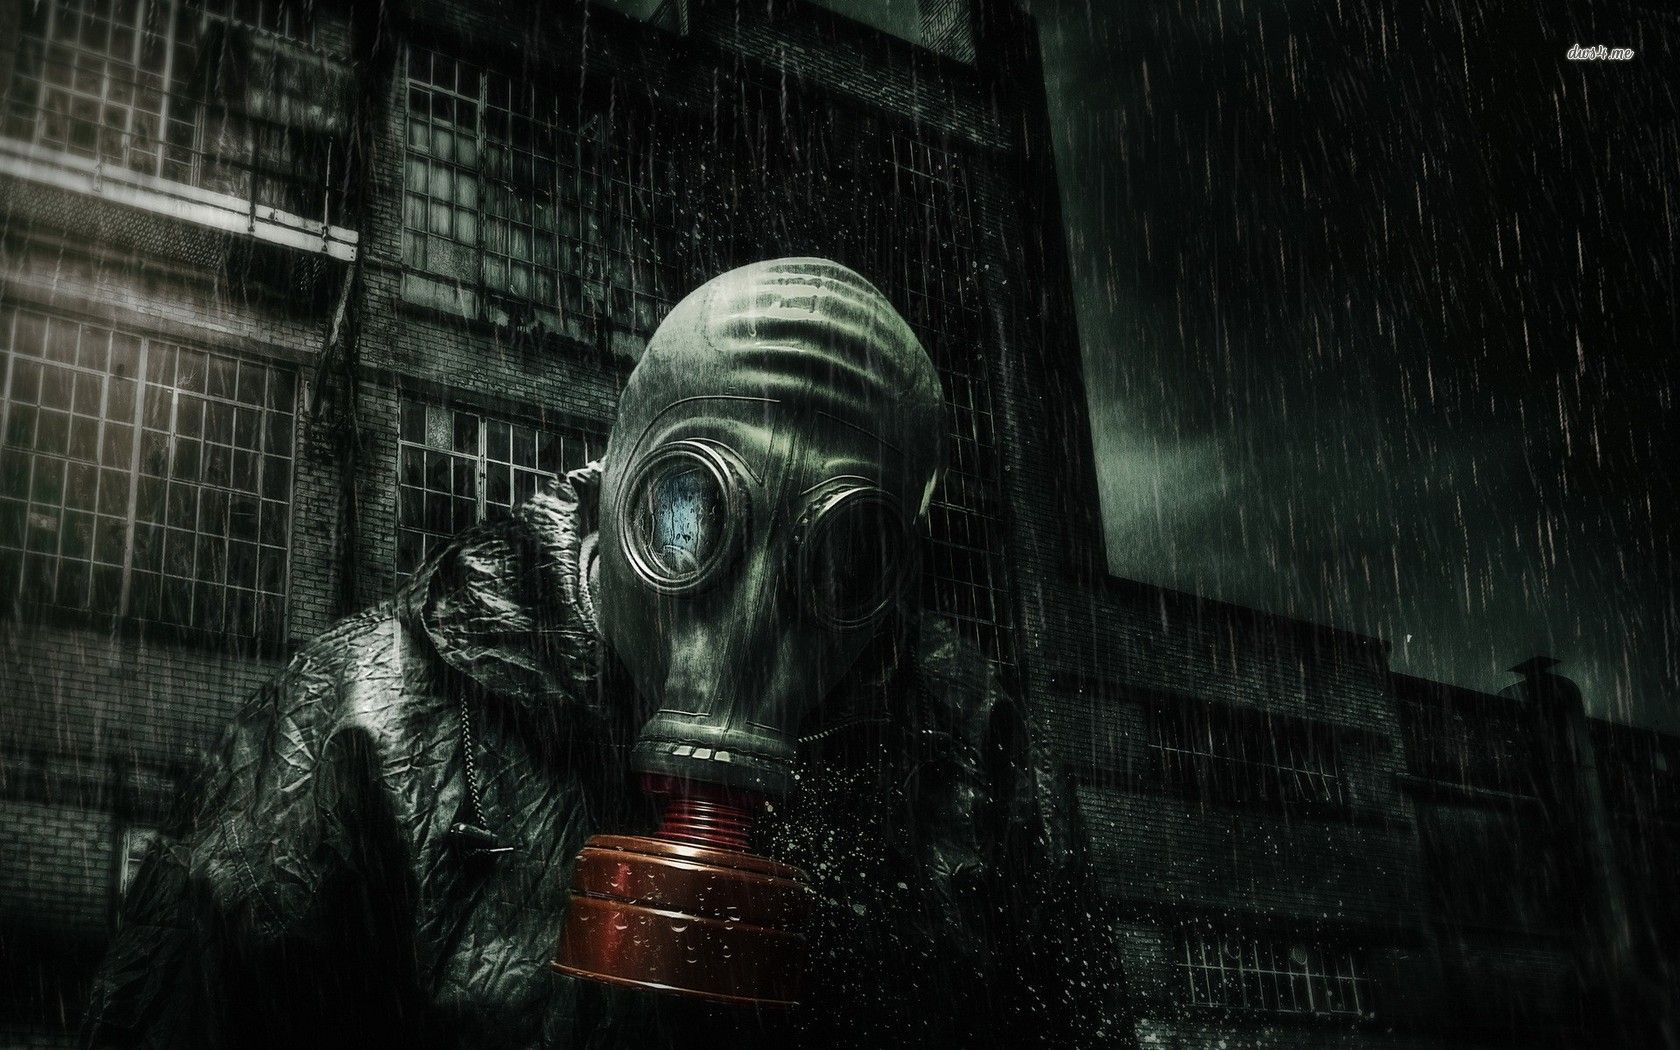 trippy gas mask wallpapers hd - photo #36